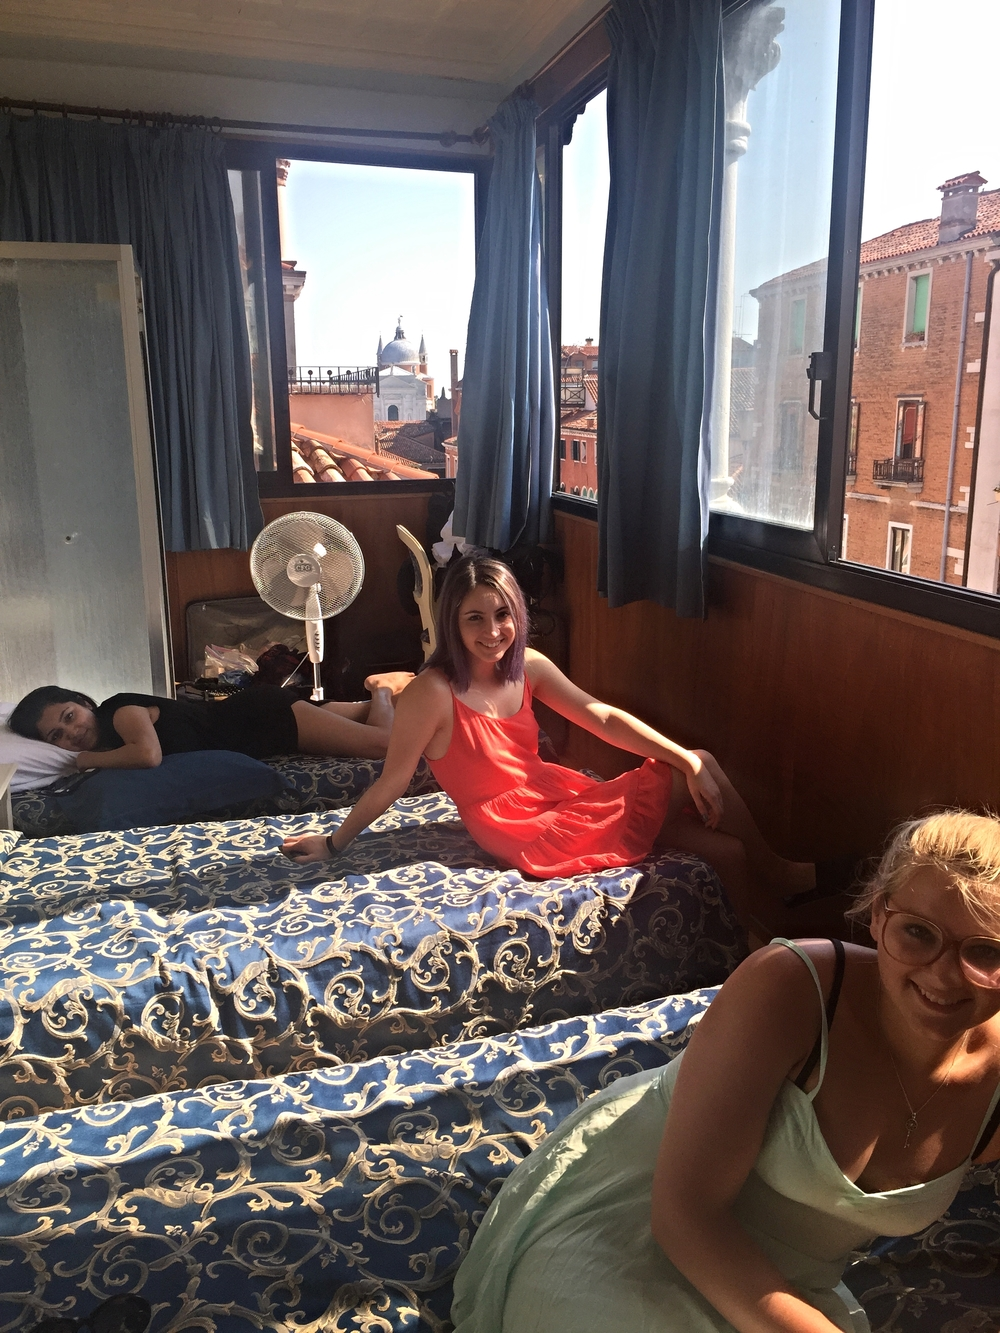 Jessica, Michelle, and Olivia settle into their new temporary home at our Venetian hotel.